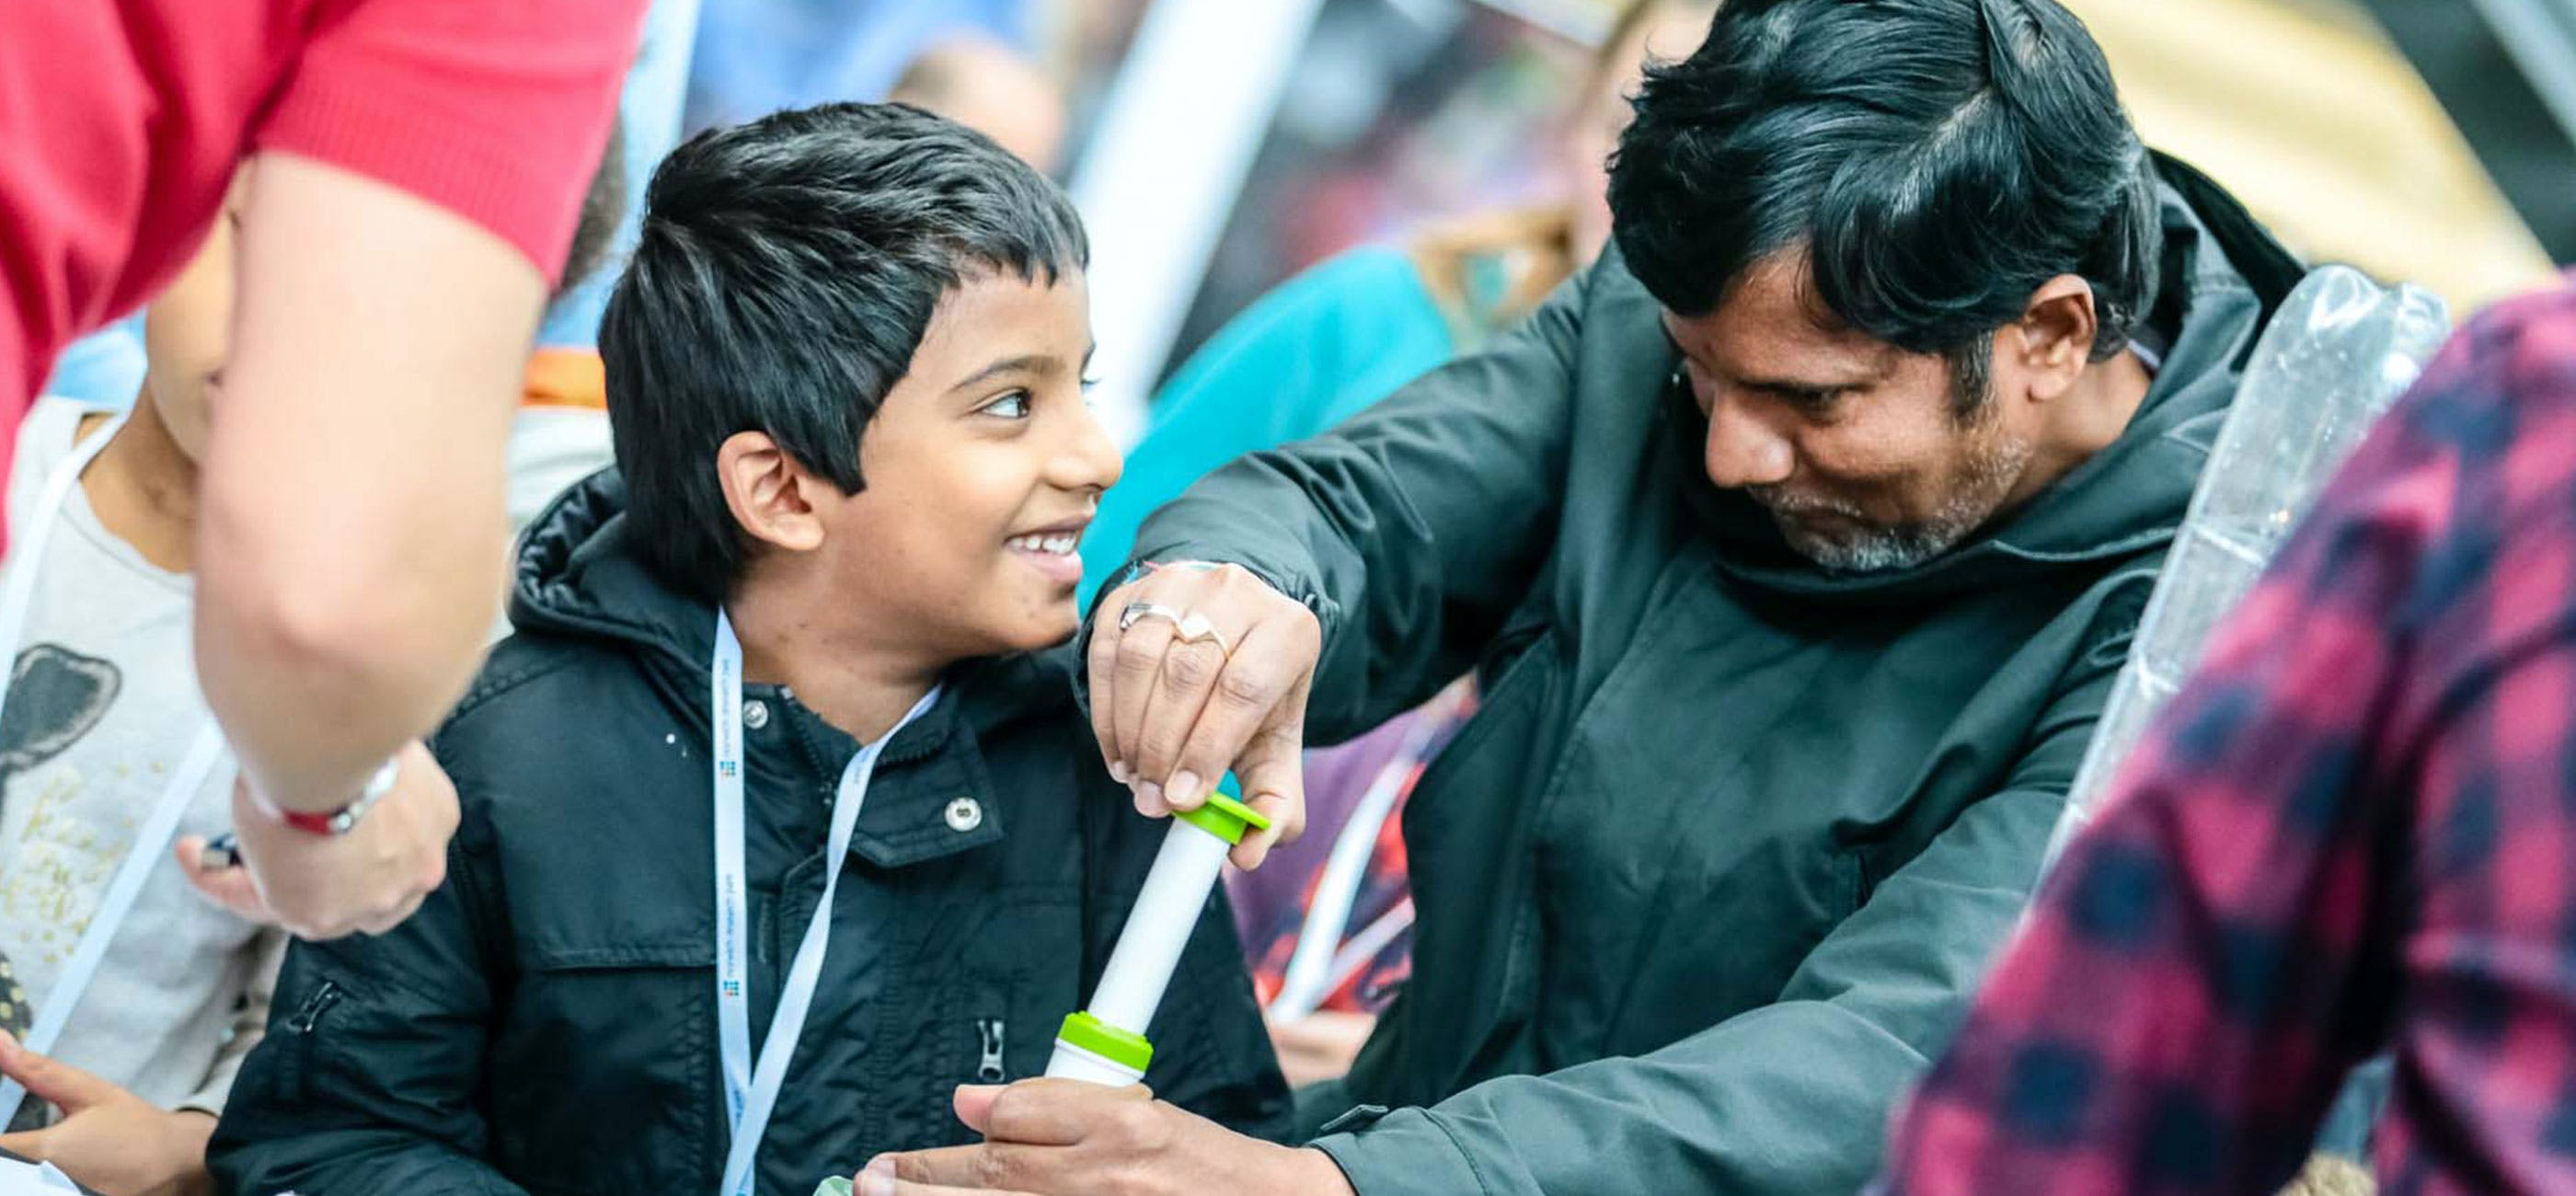 Boy and man at Norwich Science Festival 2019 - credit Mark Hewlett Photography